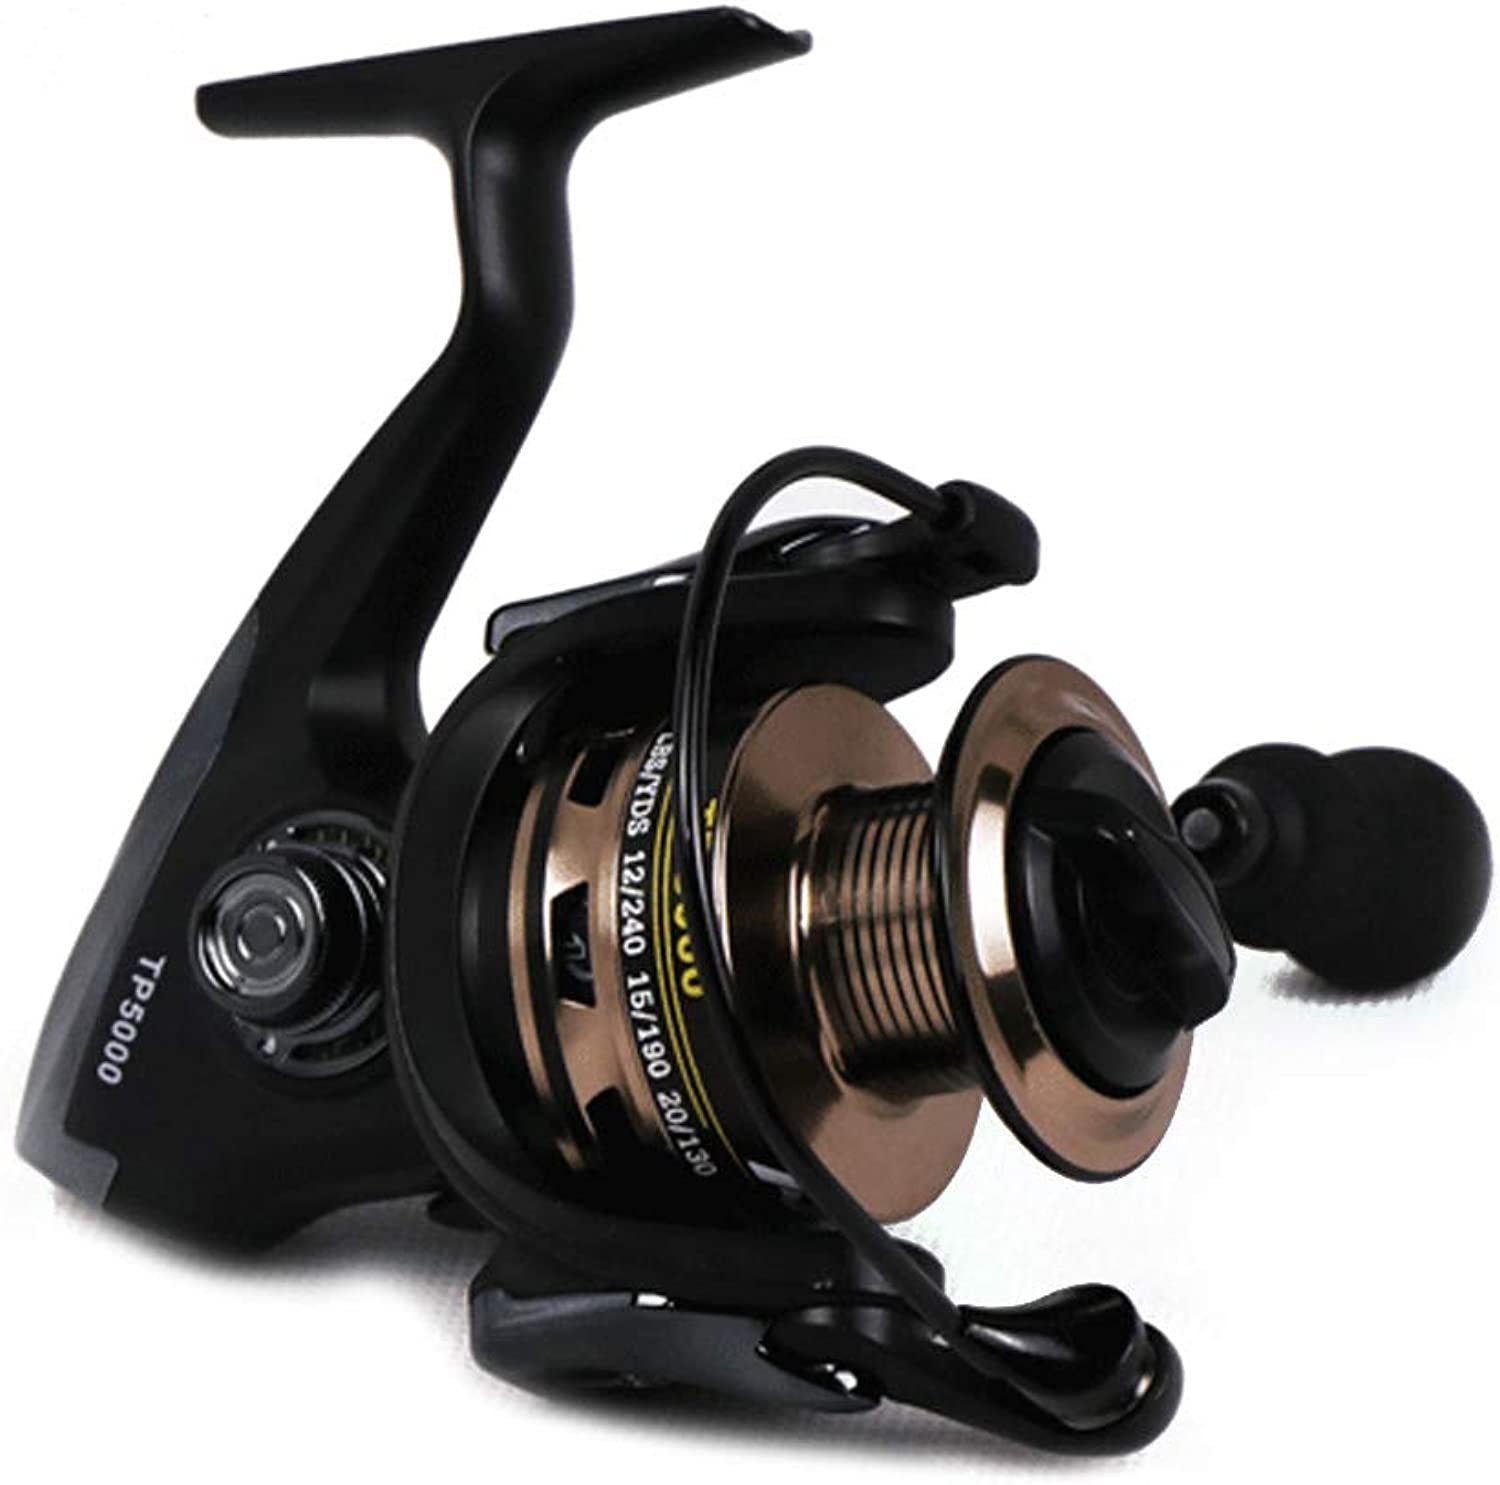 RABILTY Spinning Fishing Reel 14+1 Bearings Left Right Interchangeable Handle for Saltwater Freshwater Fishing with Double Drag Brake System